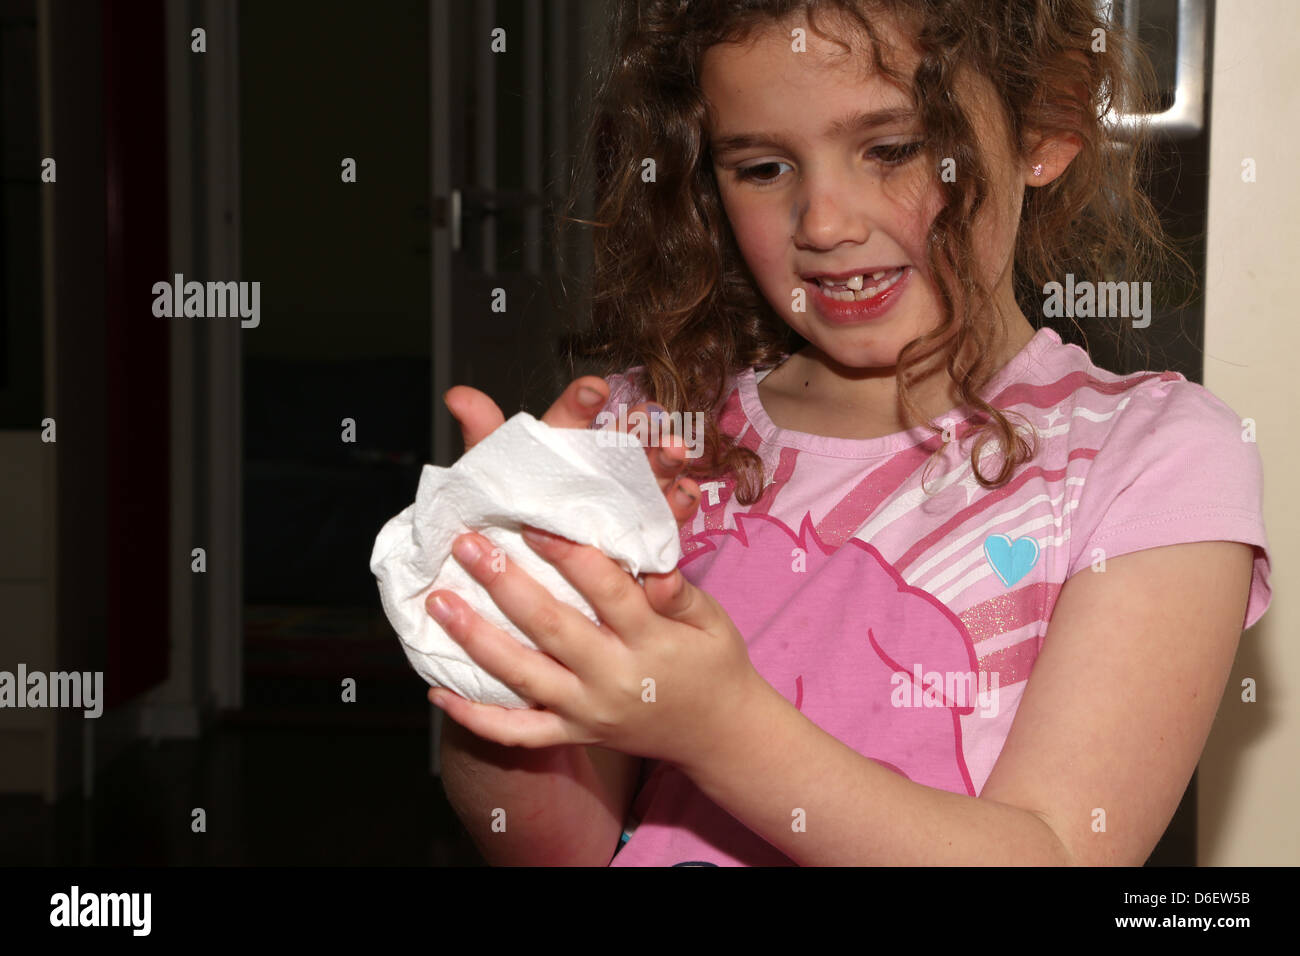 7 Year Old Girl Drying Hands On Paper Towel England Stock ...